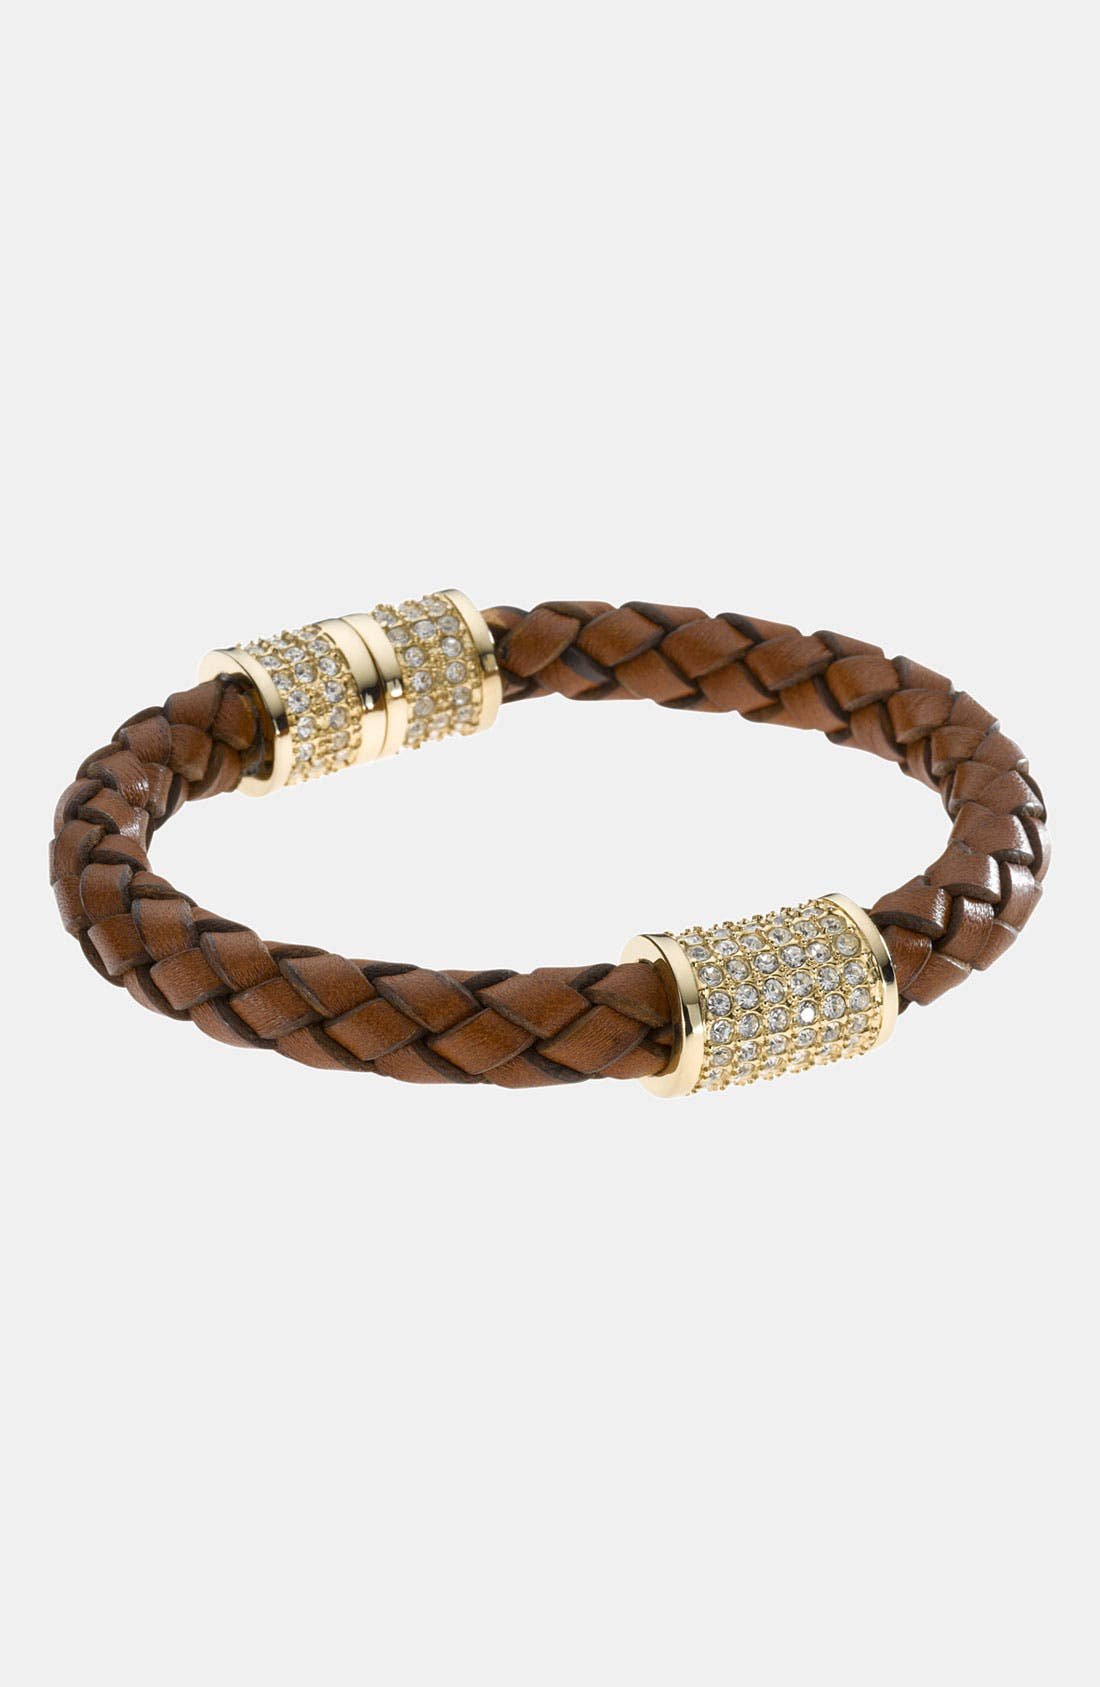 Alternate Image 1 Selected - Michael Kors 'Skorpios' Wide Leather Rope Bracelet